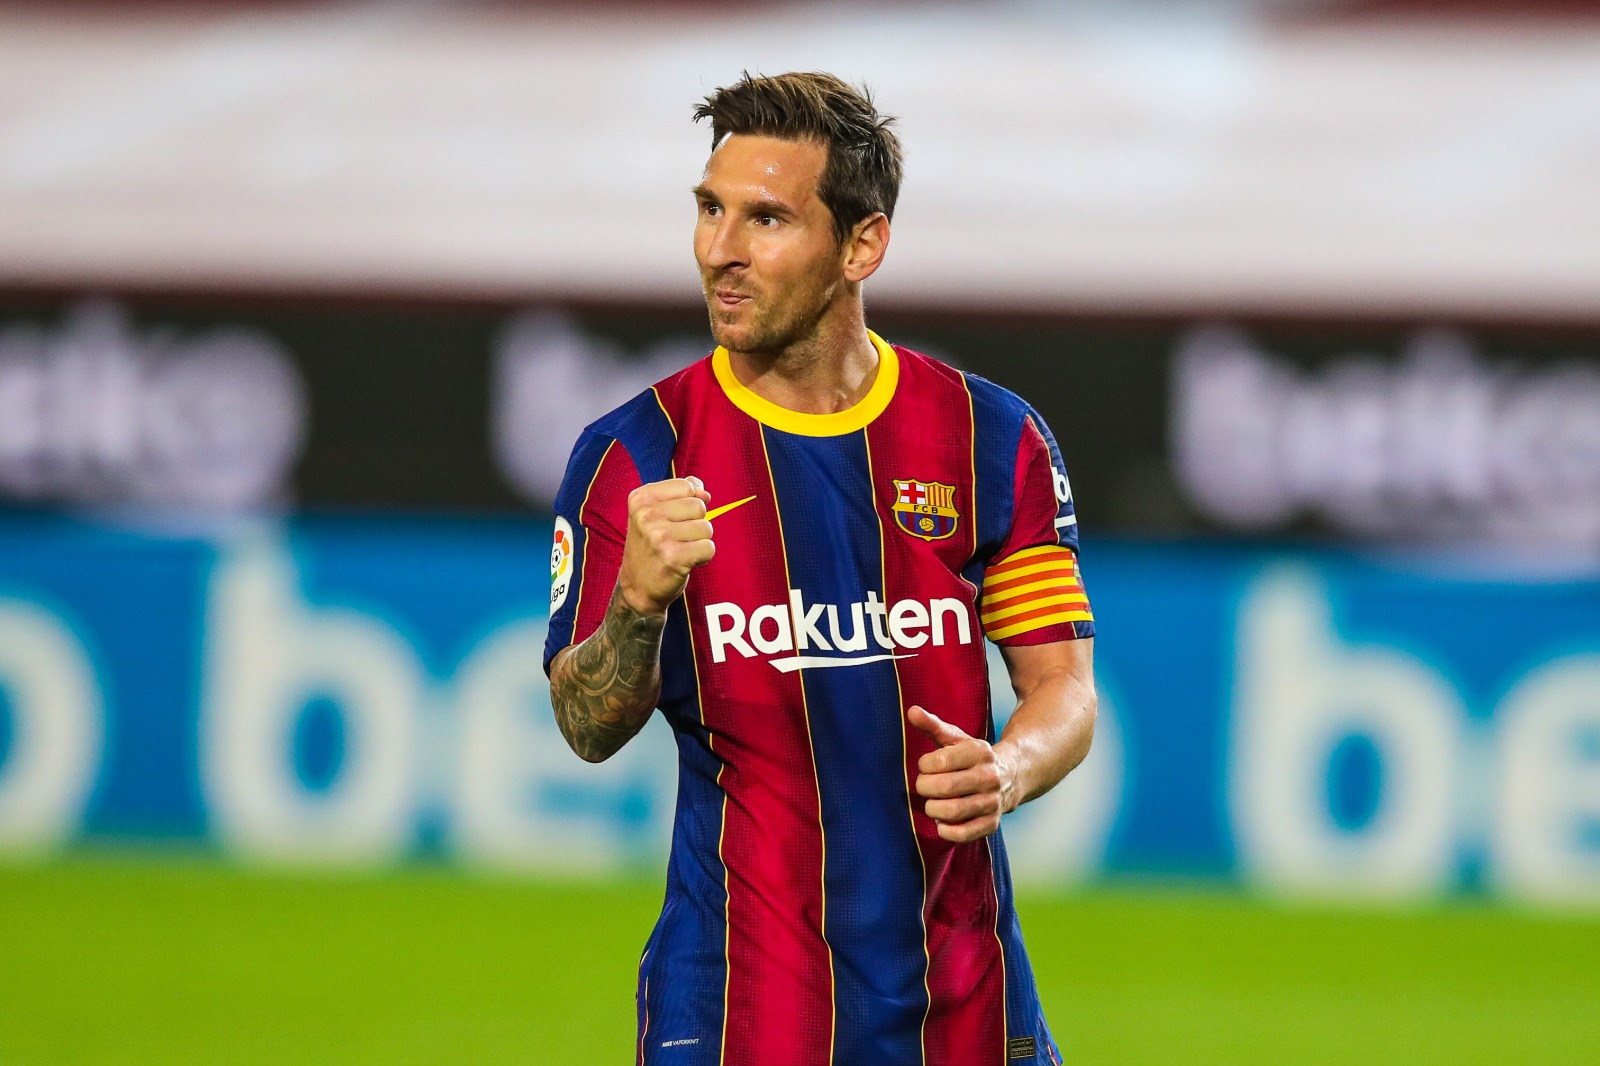 Lionel Messi aims to end this Barcelona debate and wants everyone united -  TechnoSports